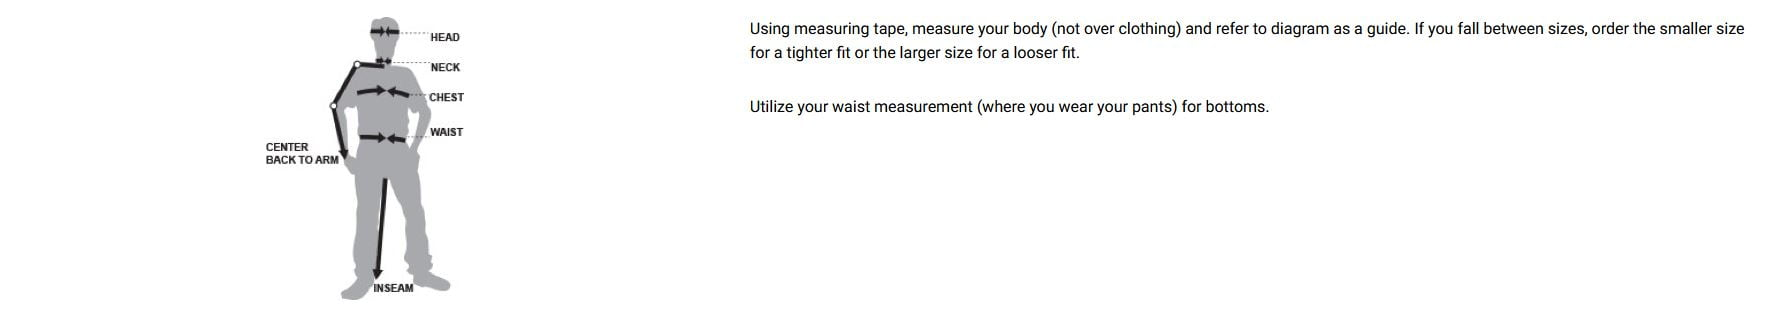 5.11 sizing instructions